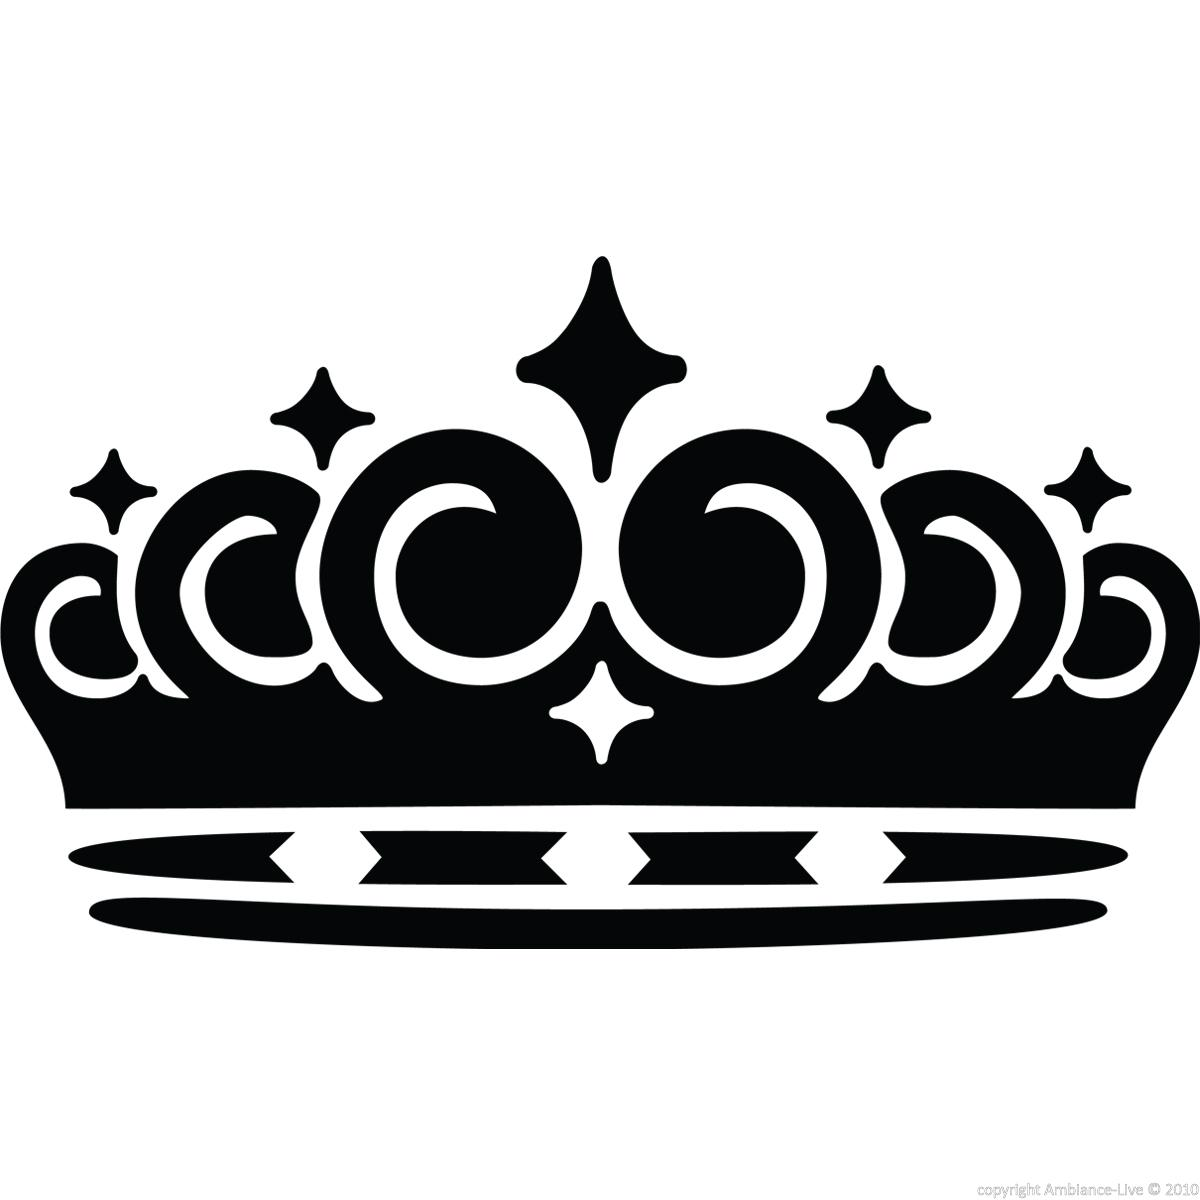 London Wall Decals Decal Queens Crown Ambiance